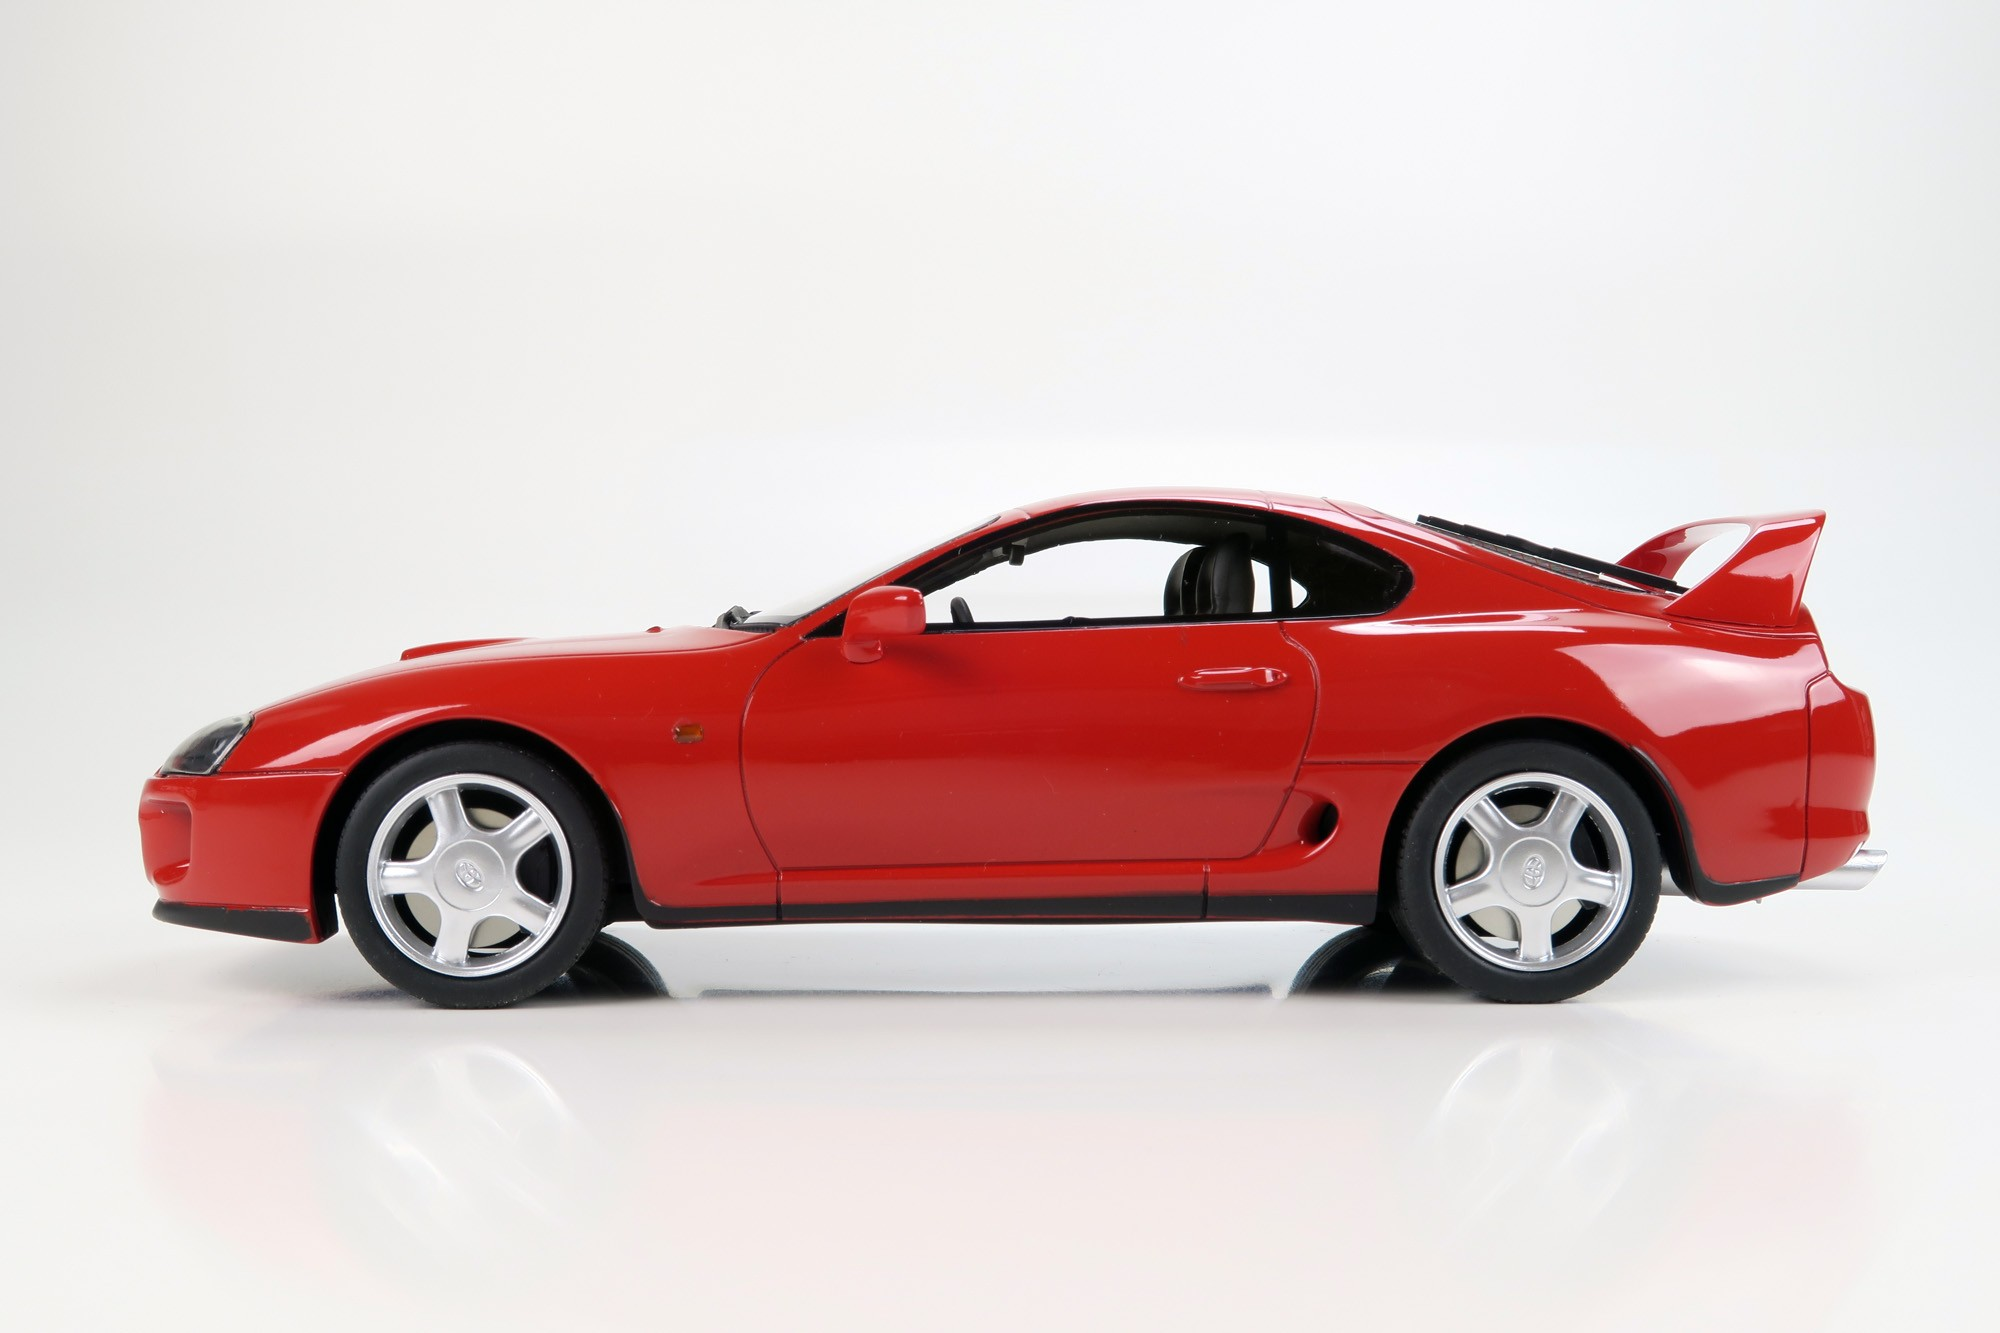 Toyota Supra 2019 >> LS Collectibles Toyota Supra MKIV 1993, 1:18 red | LS015A